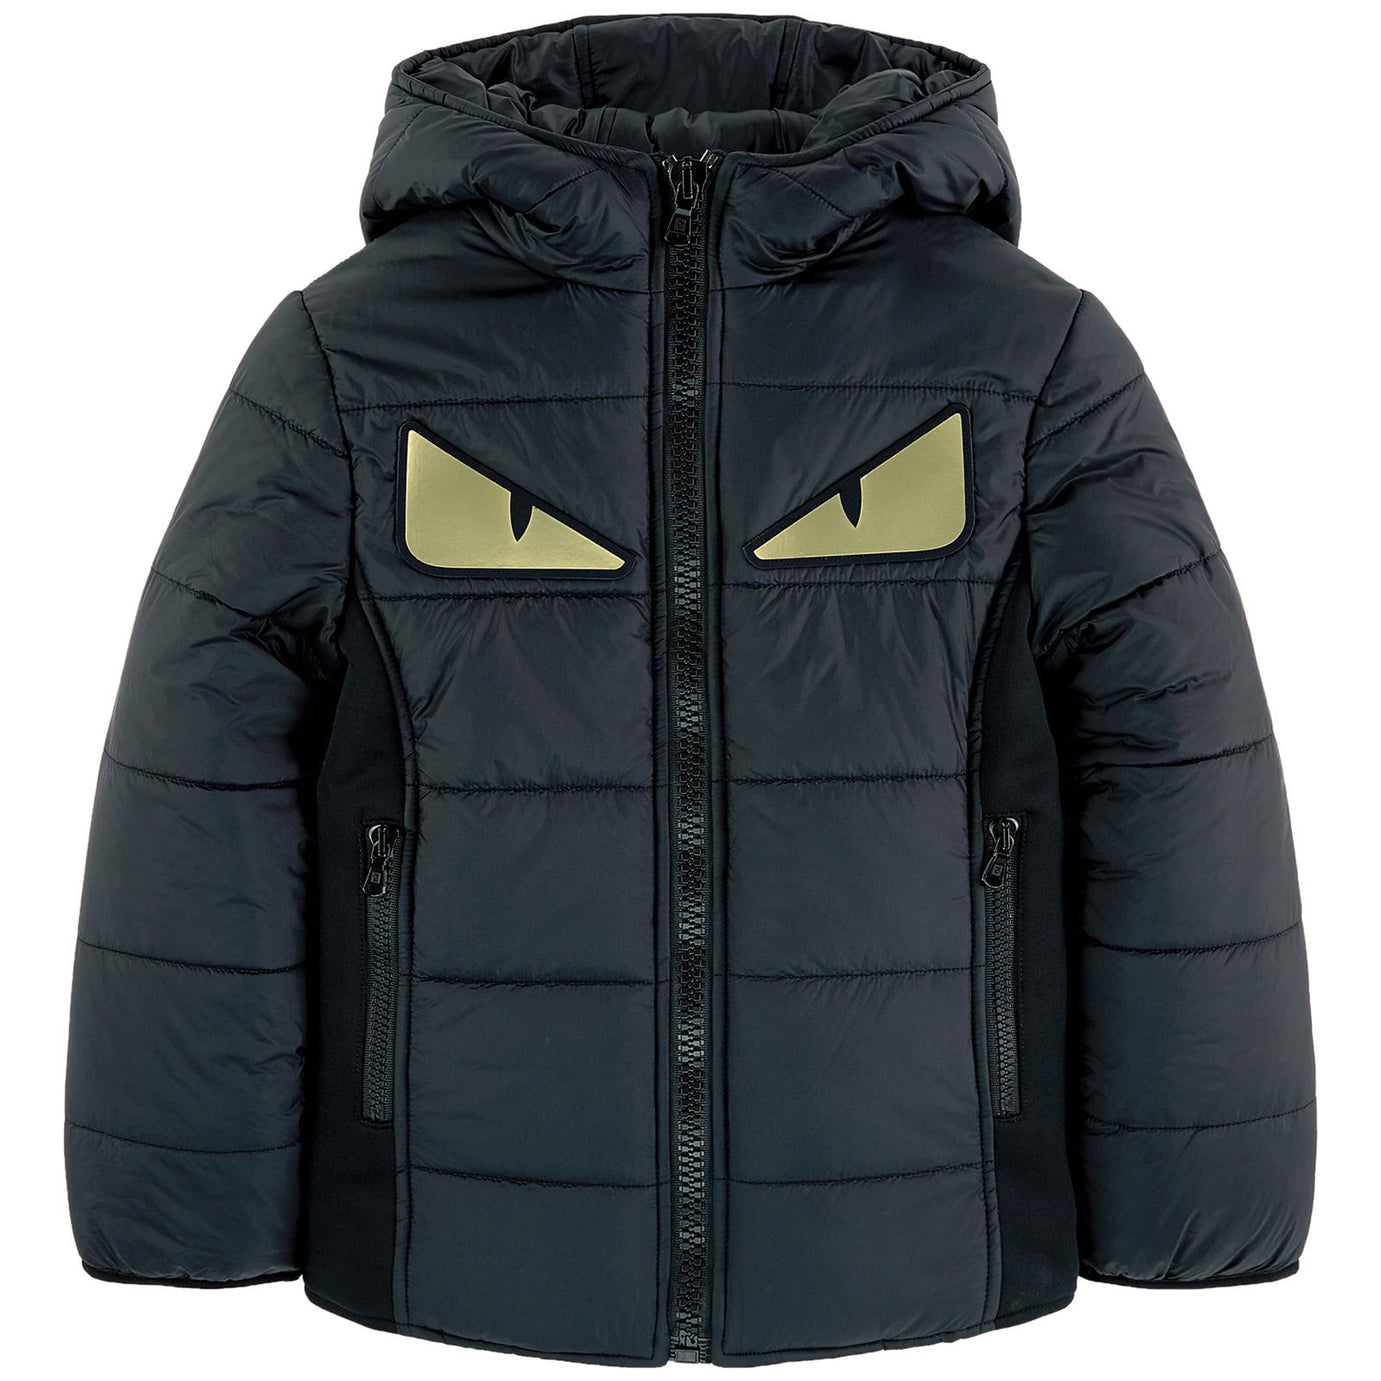 aa8a784b9 Boys Dark Puffer Jacket with Gold 'Monster Eyes'